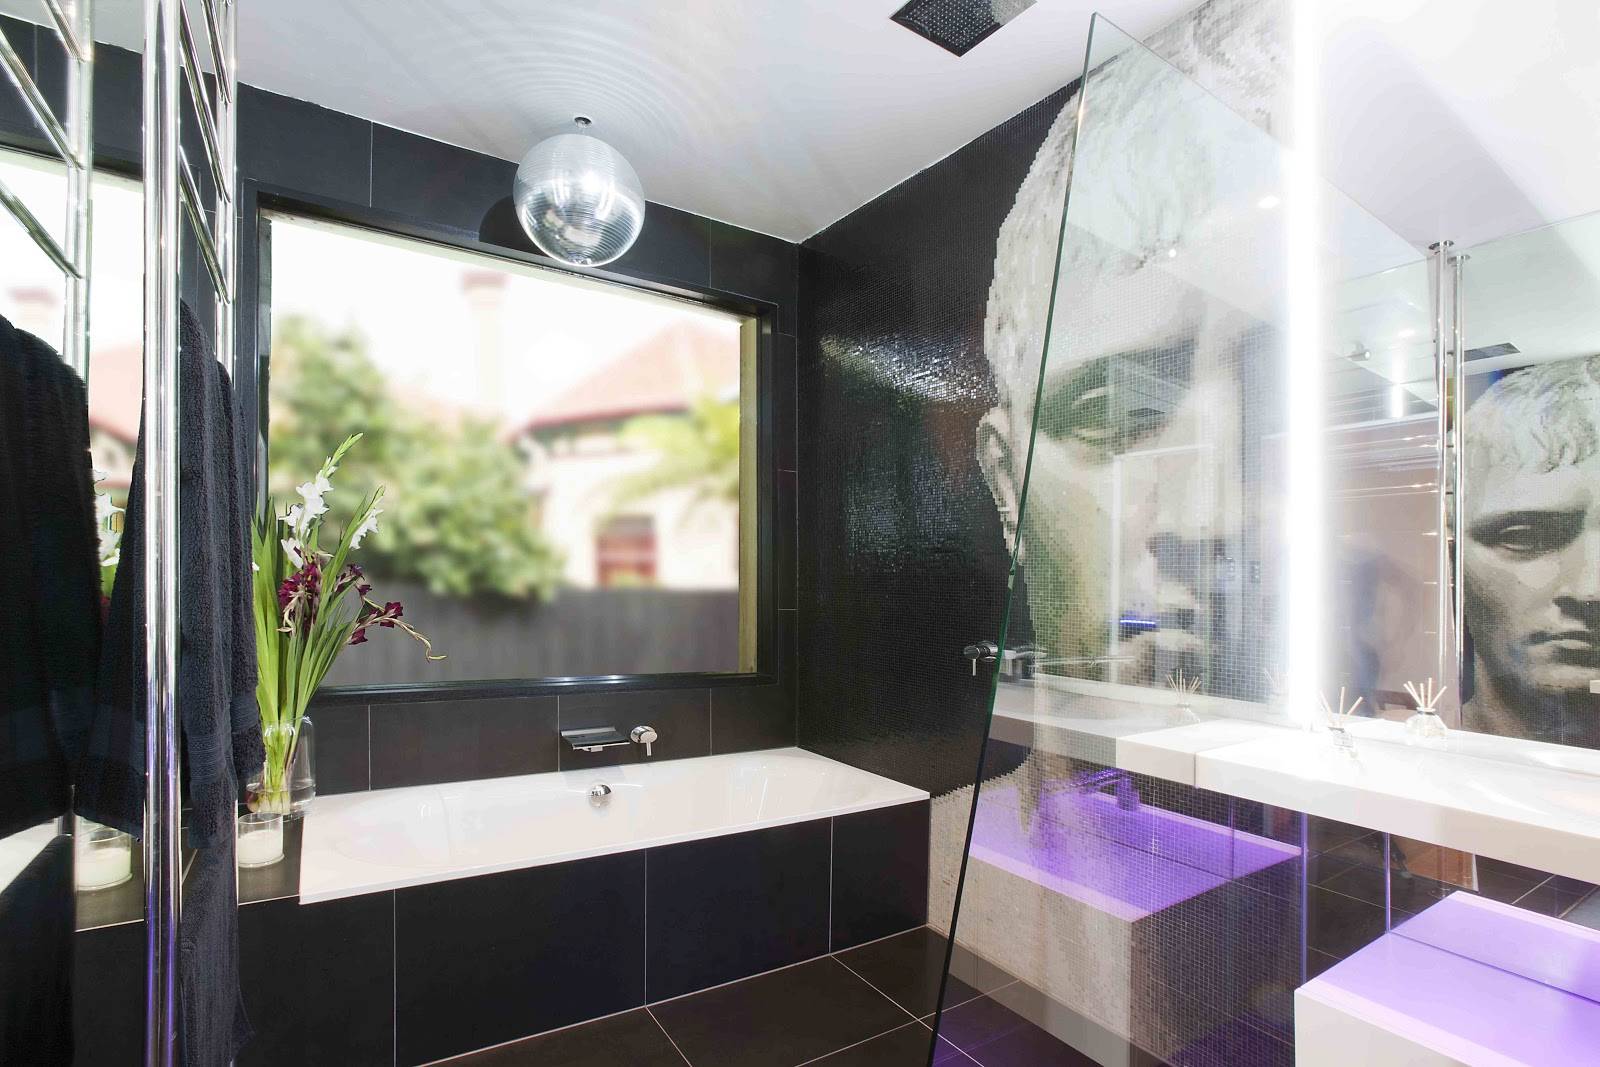 Minosa: A Modern Seamless Bathroom With True WOW Factor